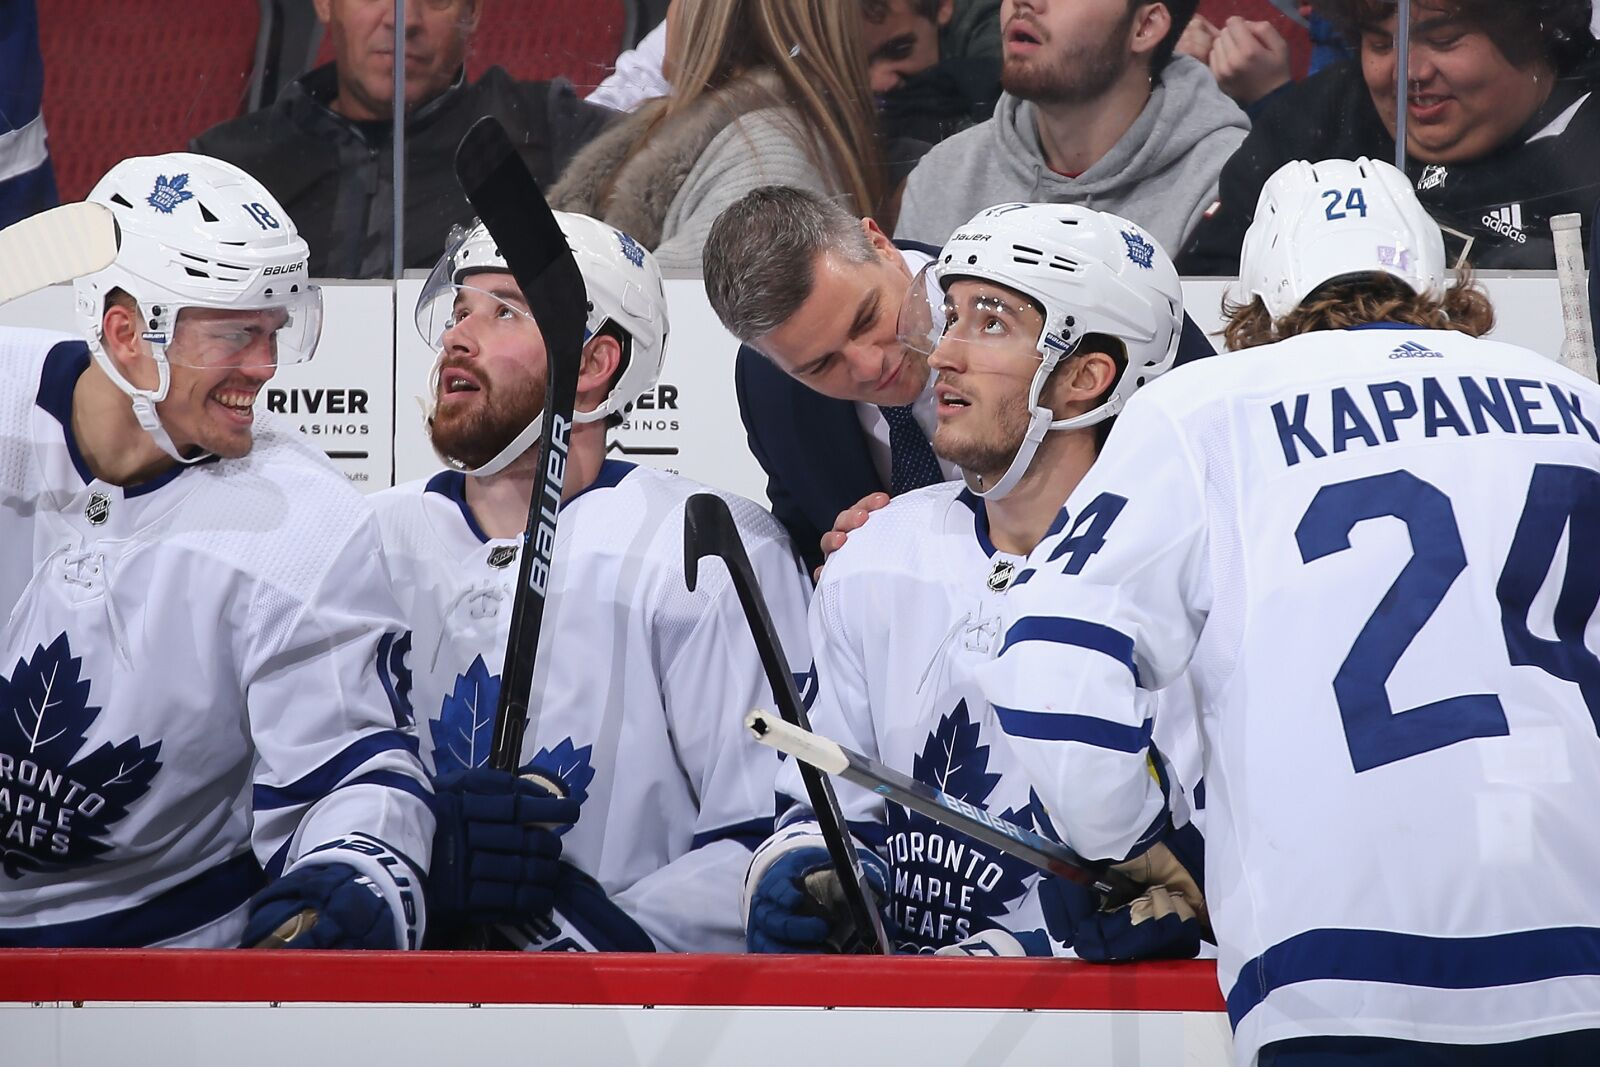 Toronto Maple Leafs: Follow the Evidence, Respect the Process